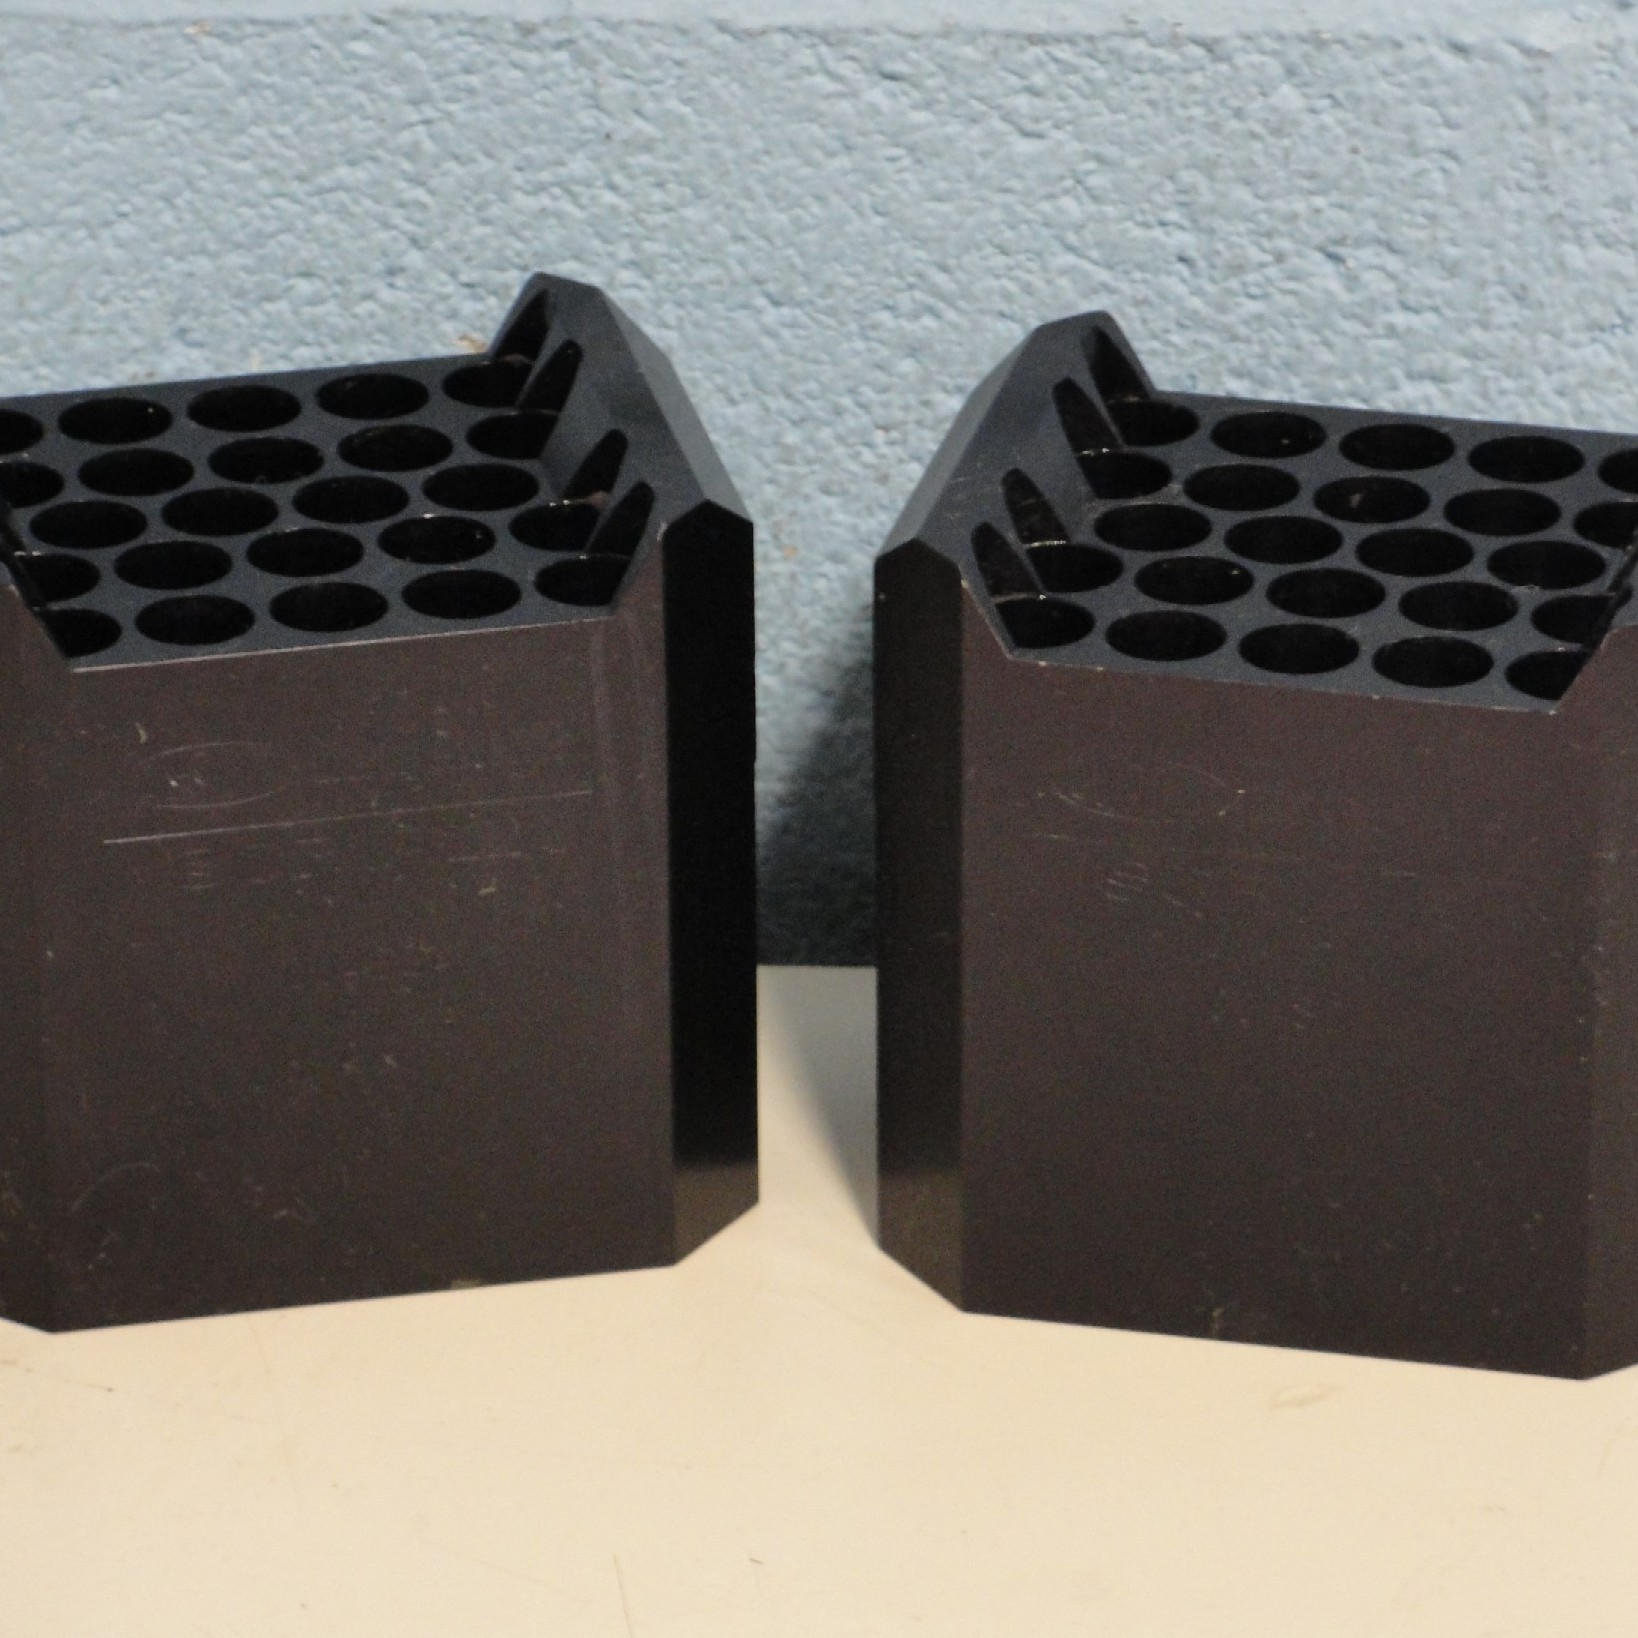 Sorvall Aluminum 24-place 5mL Carriers Image